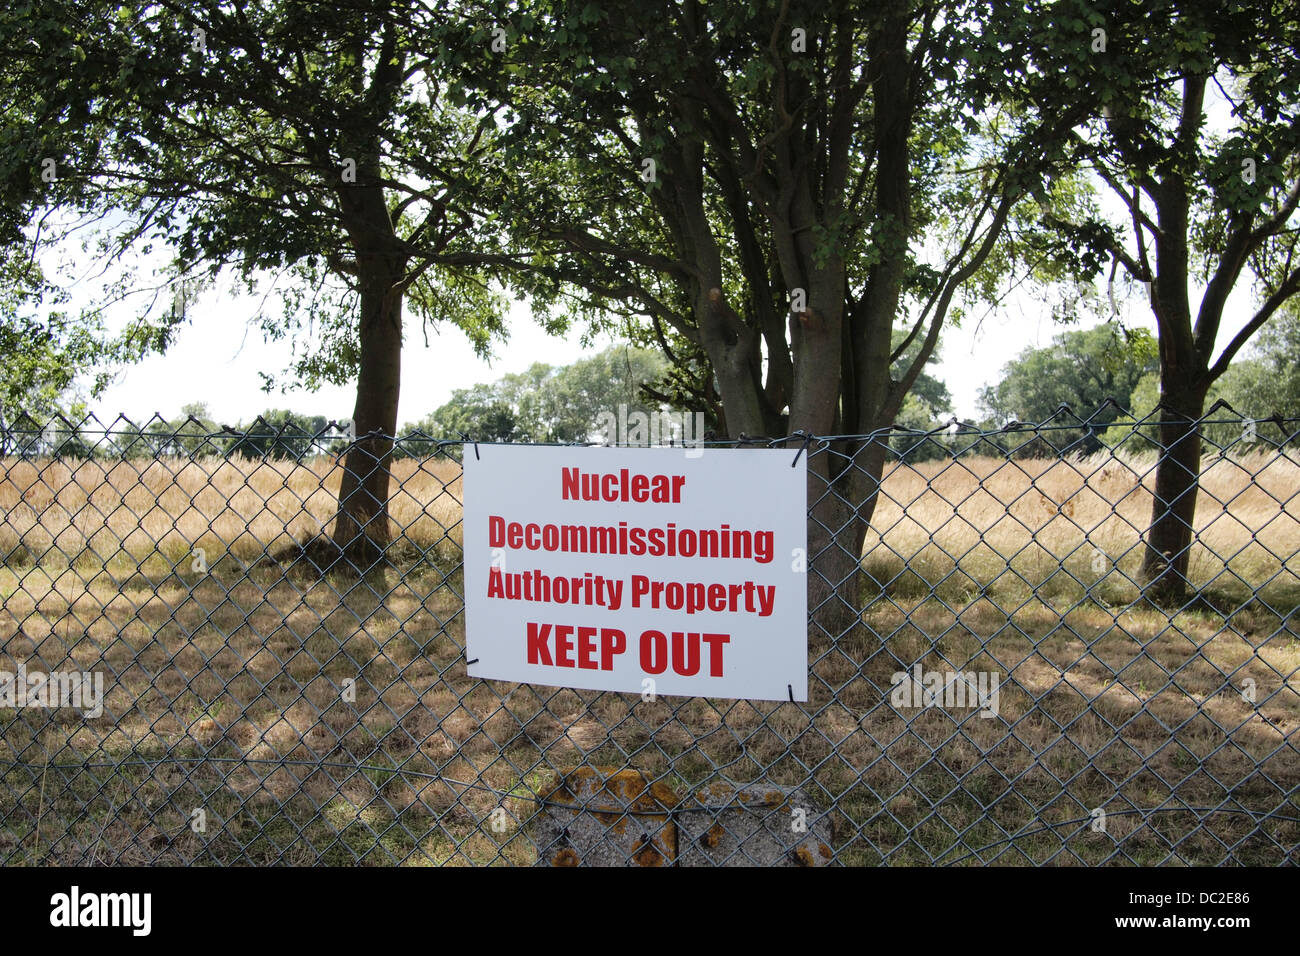 NO ENTRY Nuclear Decommissioning Authority Property site in Bradwell on Sea, Essex UK - Stock Image